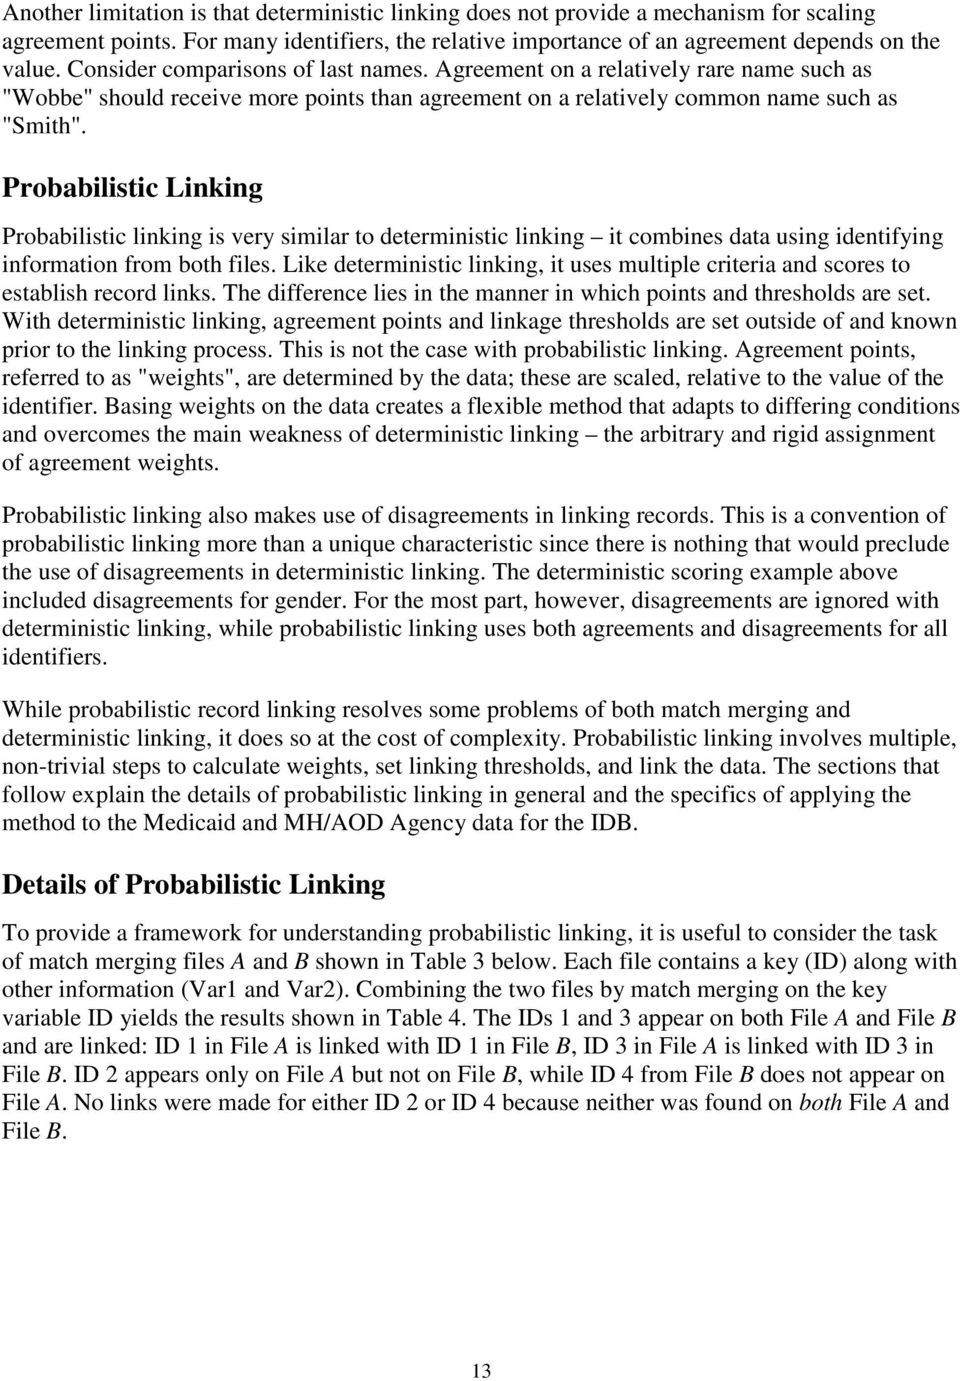 Probabilistic Linking Probabilistic linking is very similar to deterministic linking it combines data using identifying information from both files.